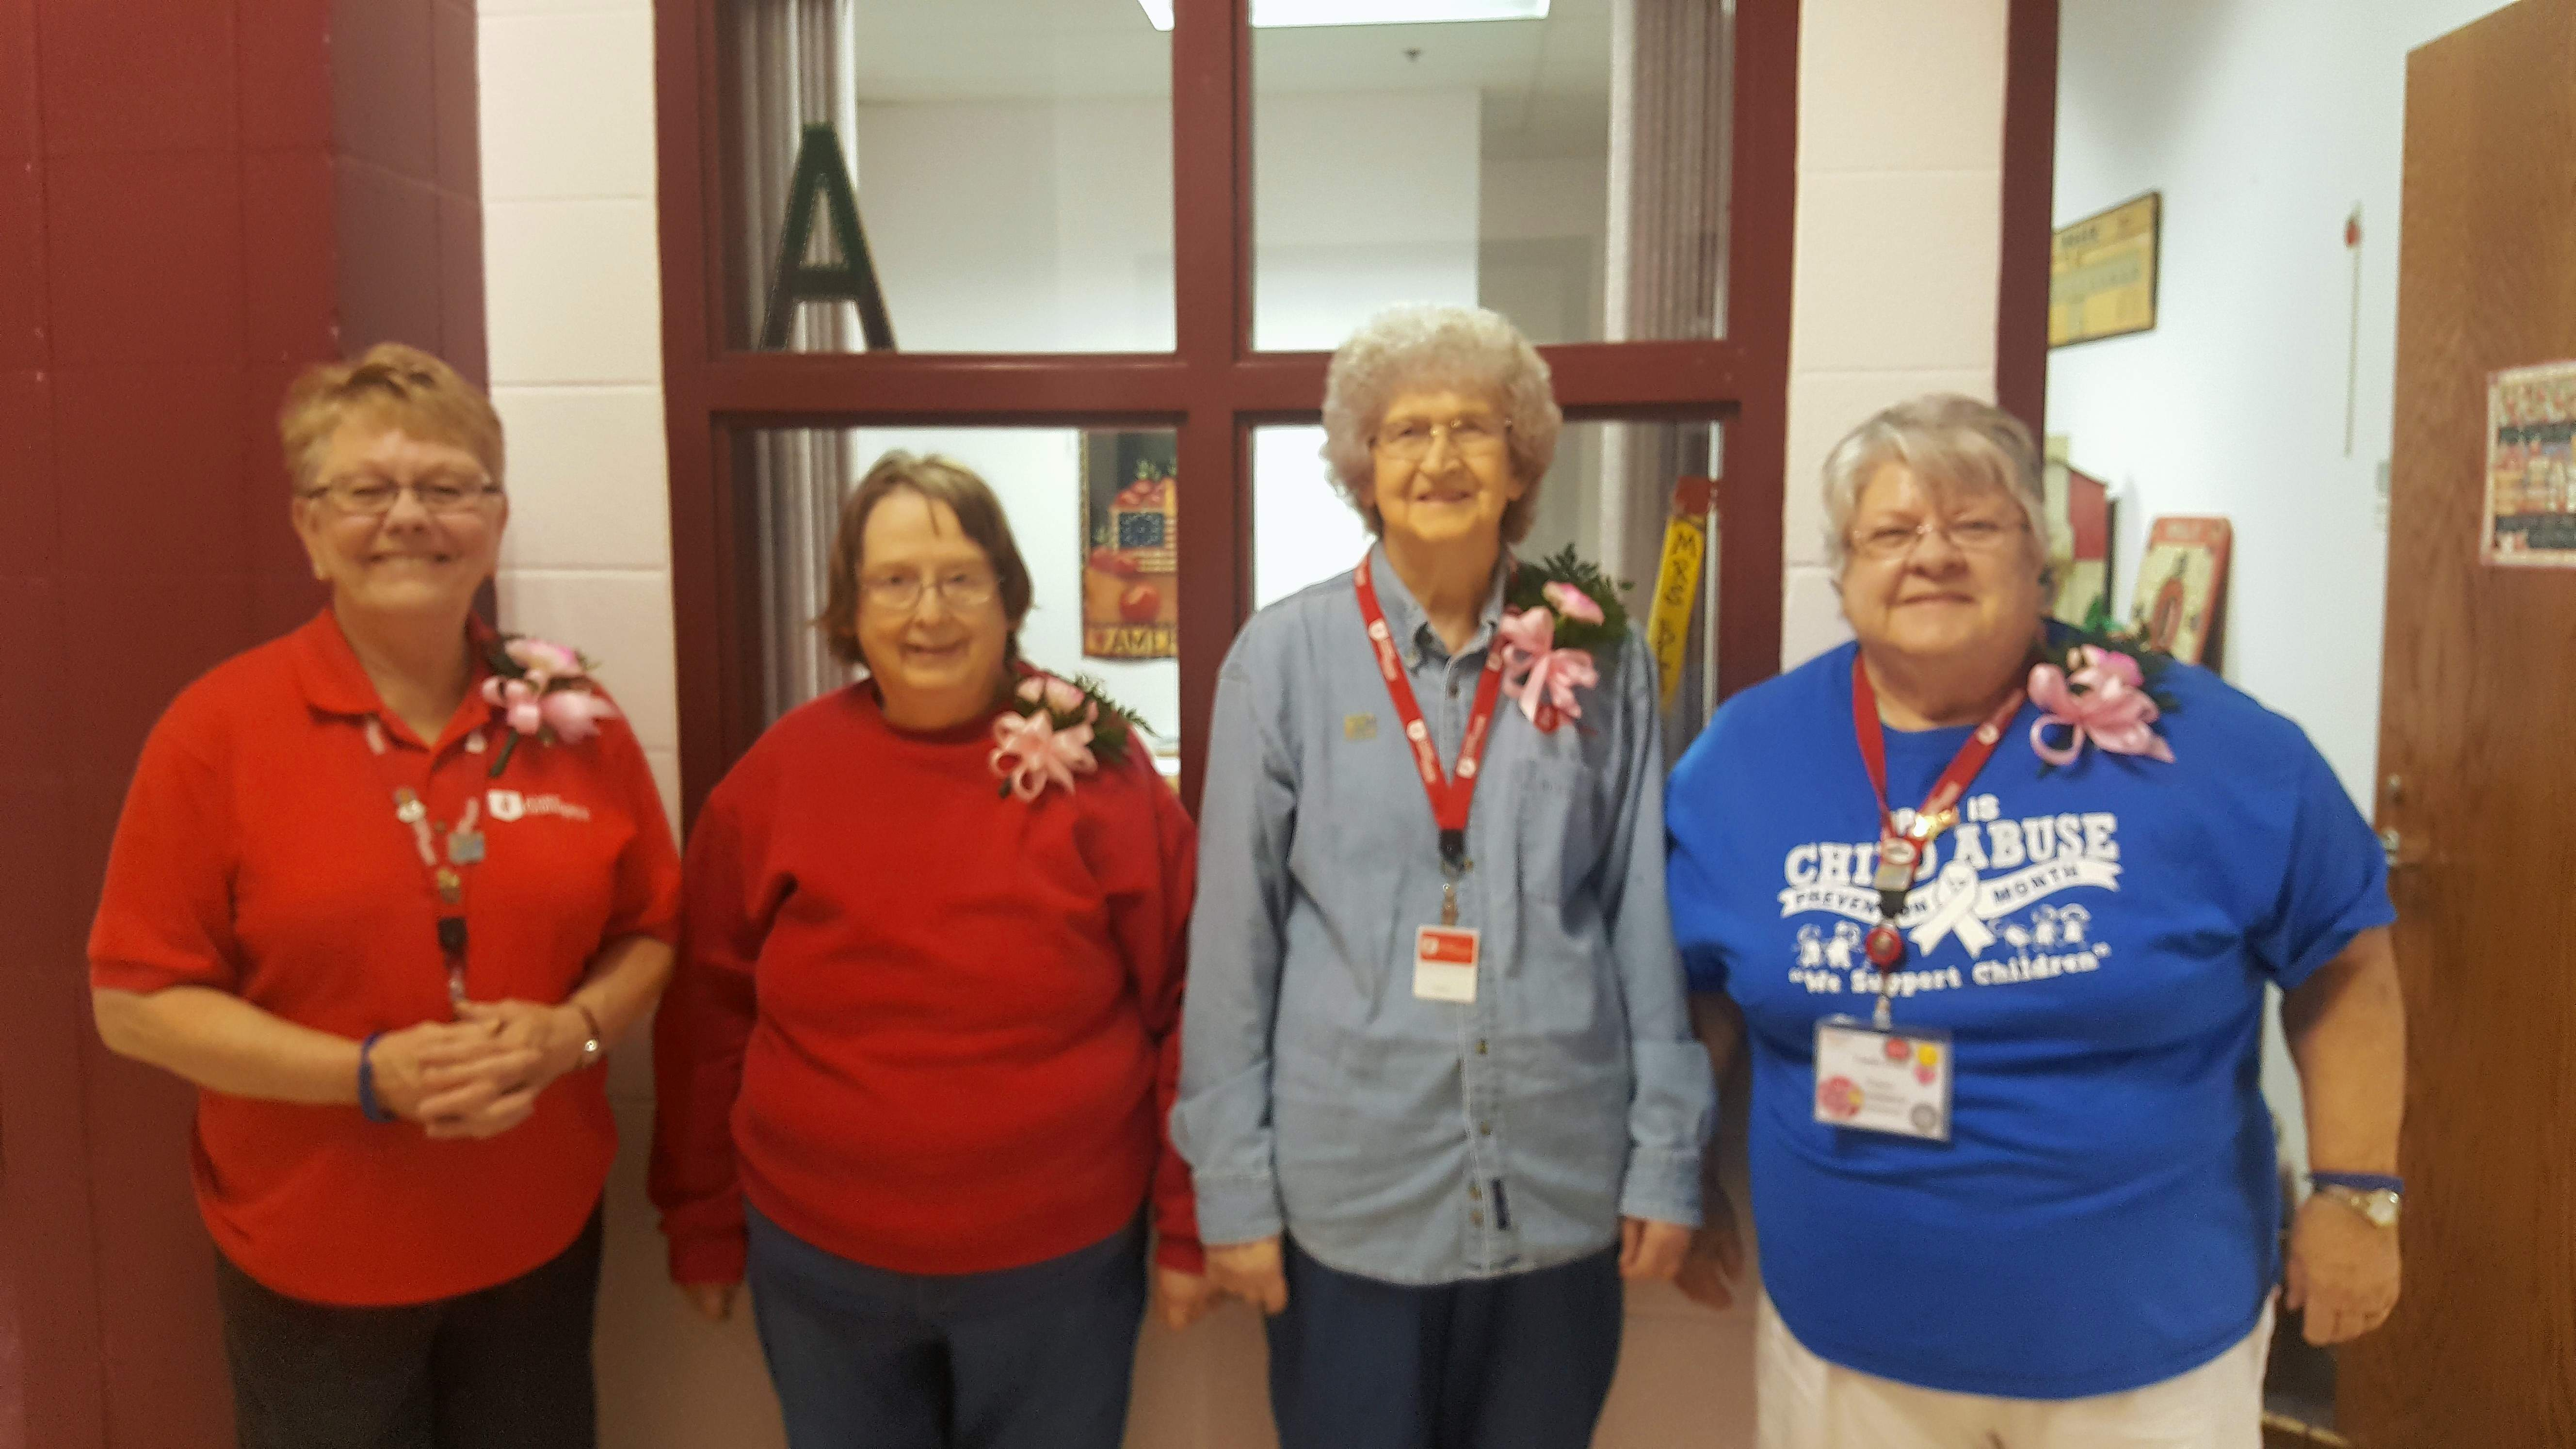 Benton Grade School 'Grandmas' include, from left to right, Mary Horton, Mary Dillon, Norma Shockley and Linda Peter. Not pictured is Rena Brookshire.